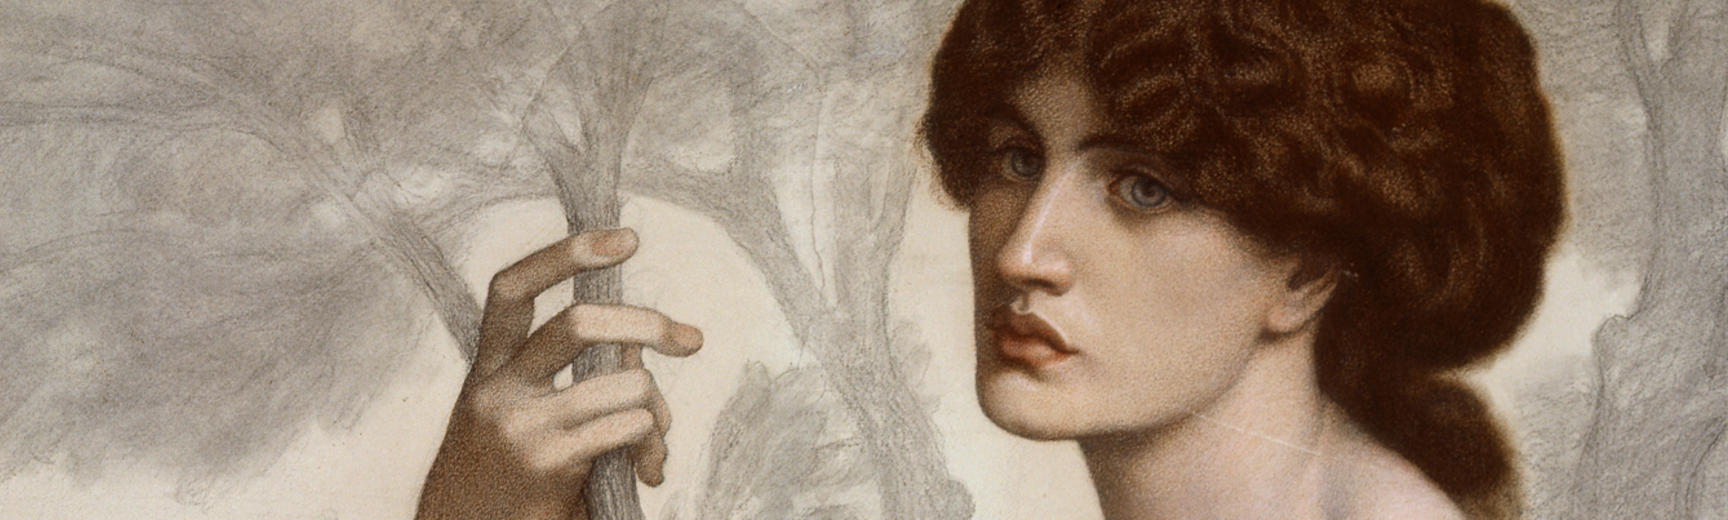 Detail from a painting by Rossetti of a woman holding a branch